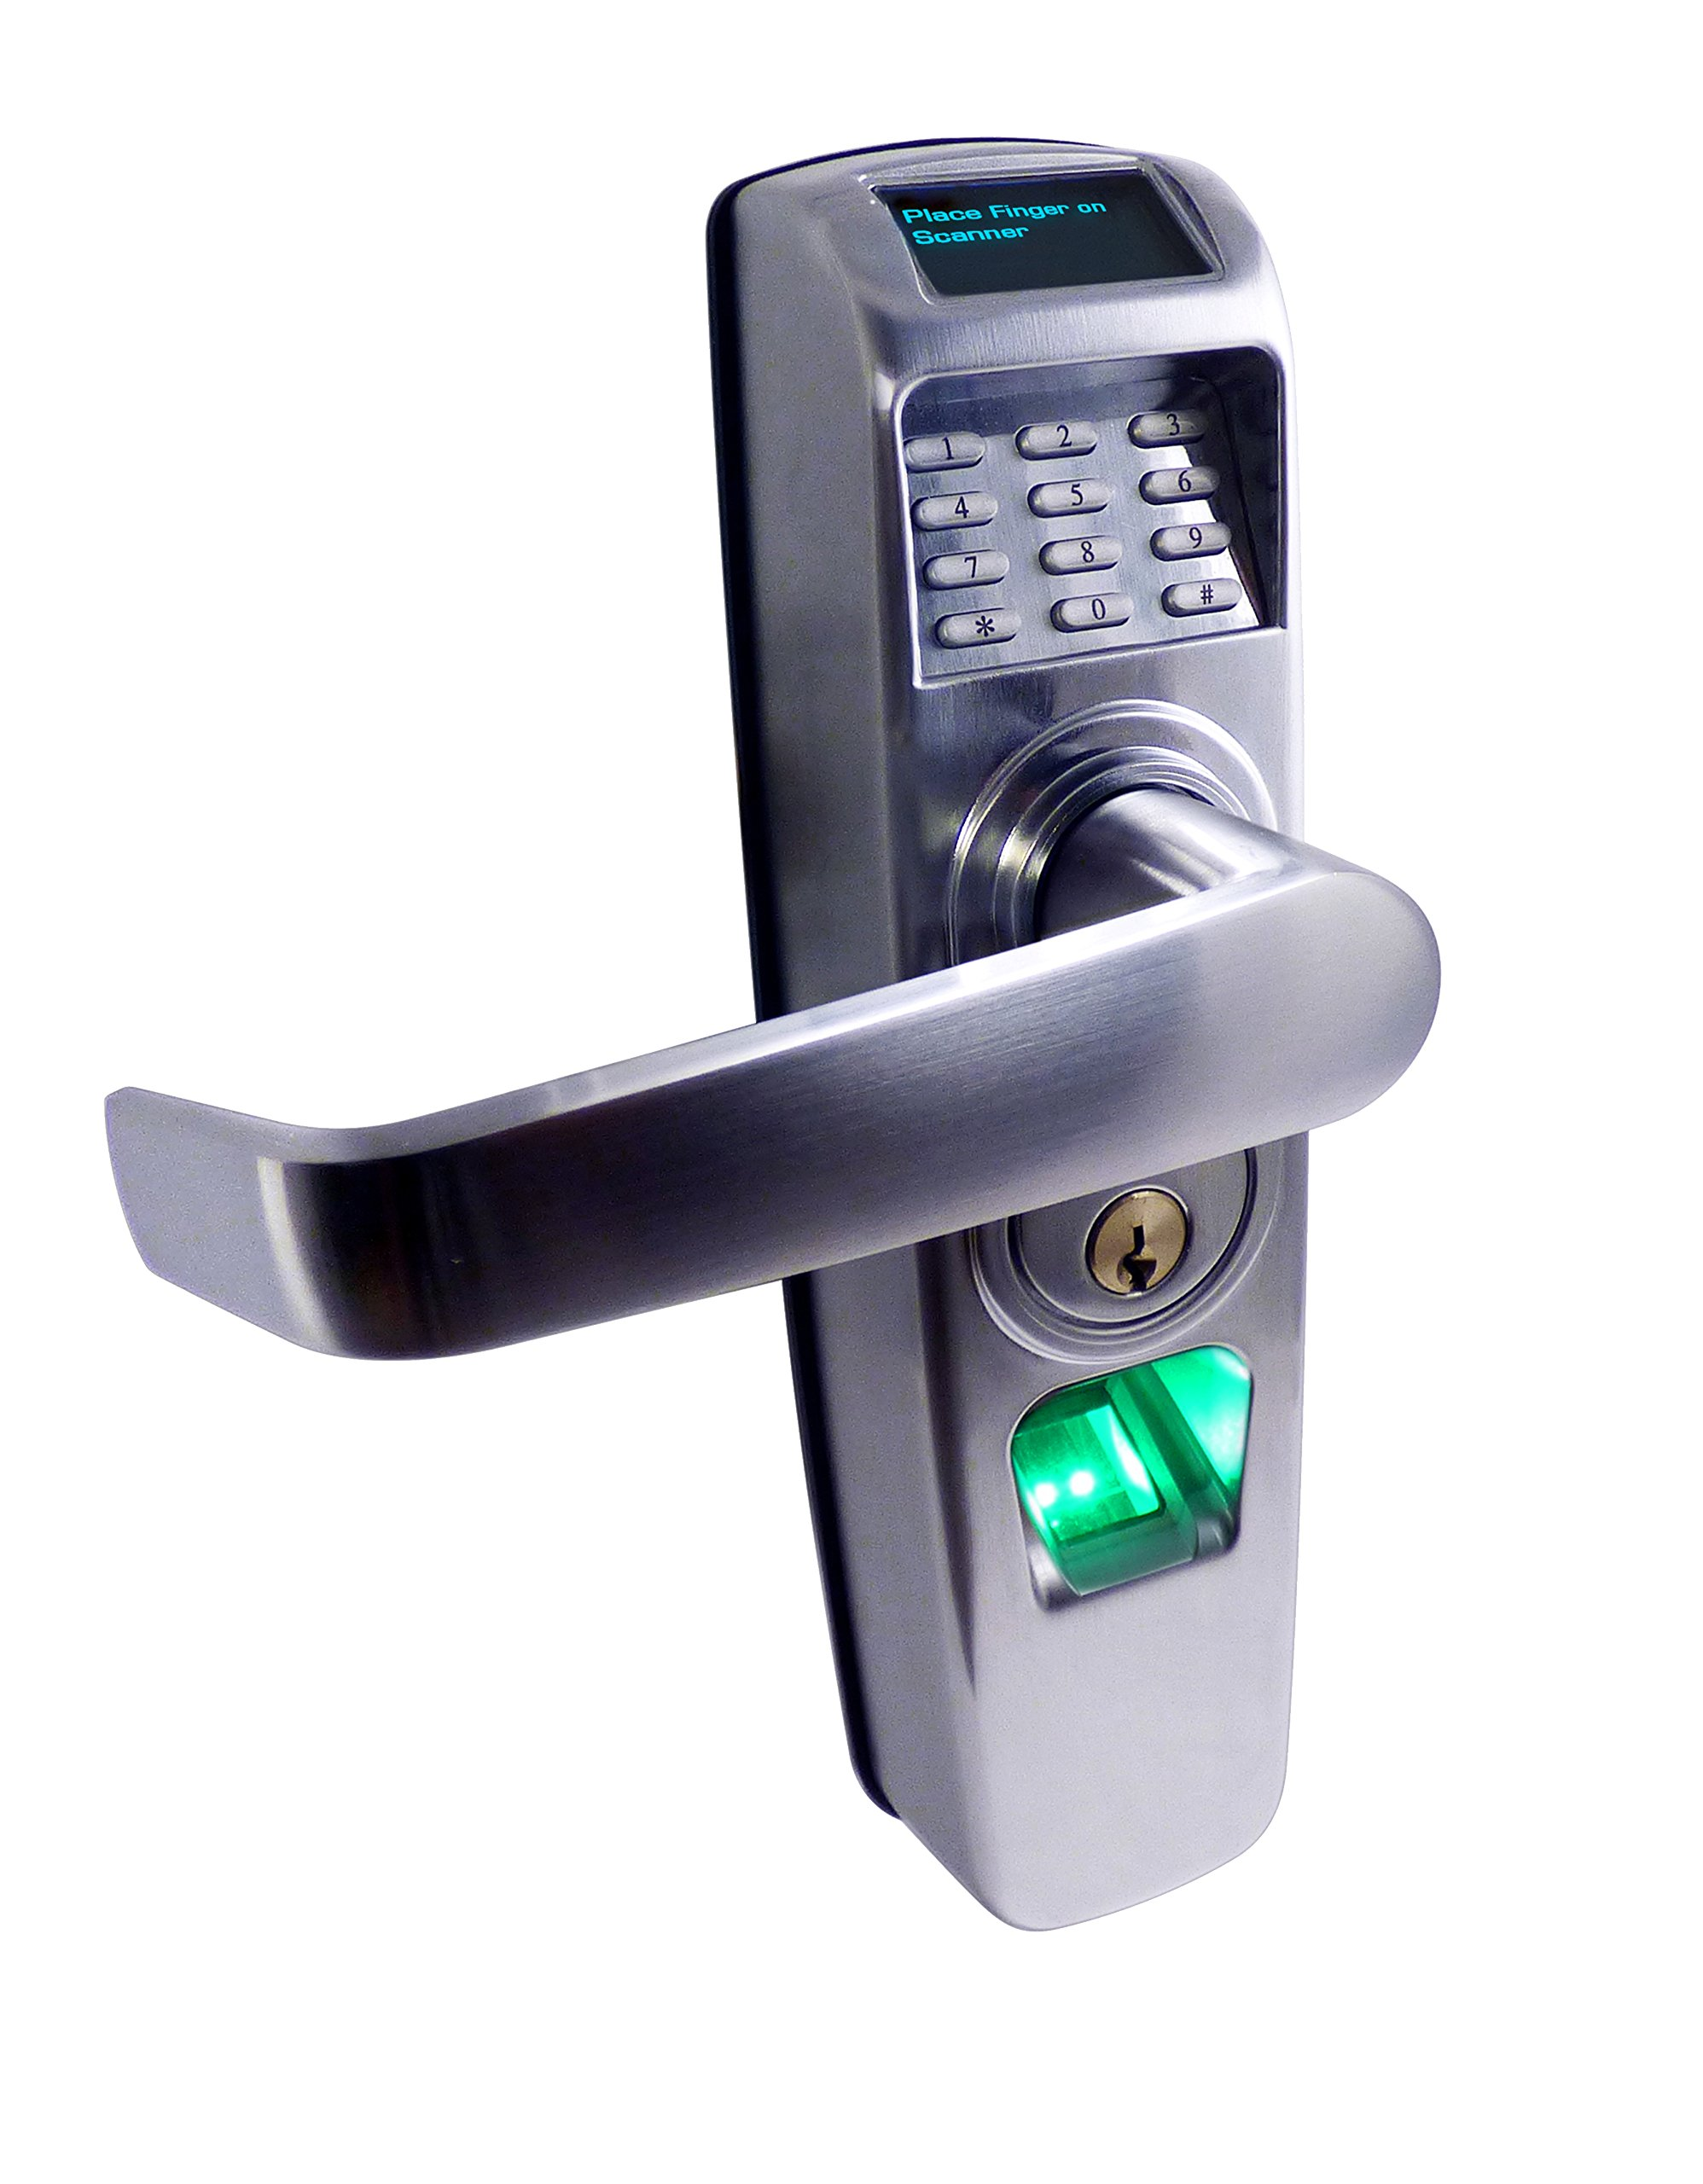 Westinghouse RTS-Z PIN Code Lock with Z-Wave & Fingerprint Reader